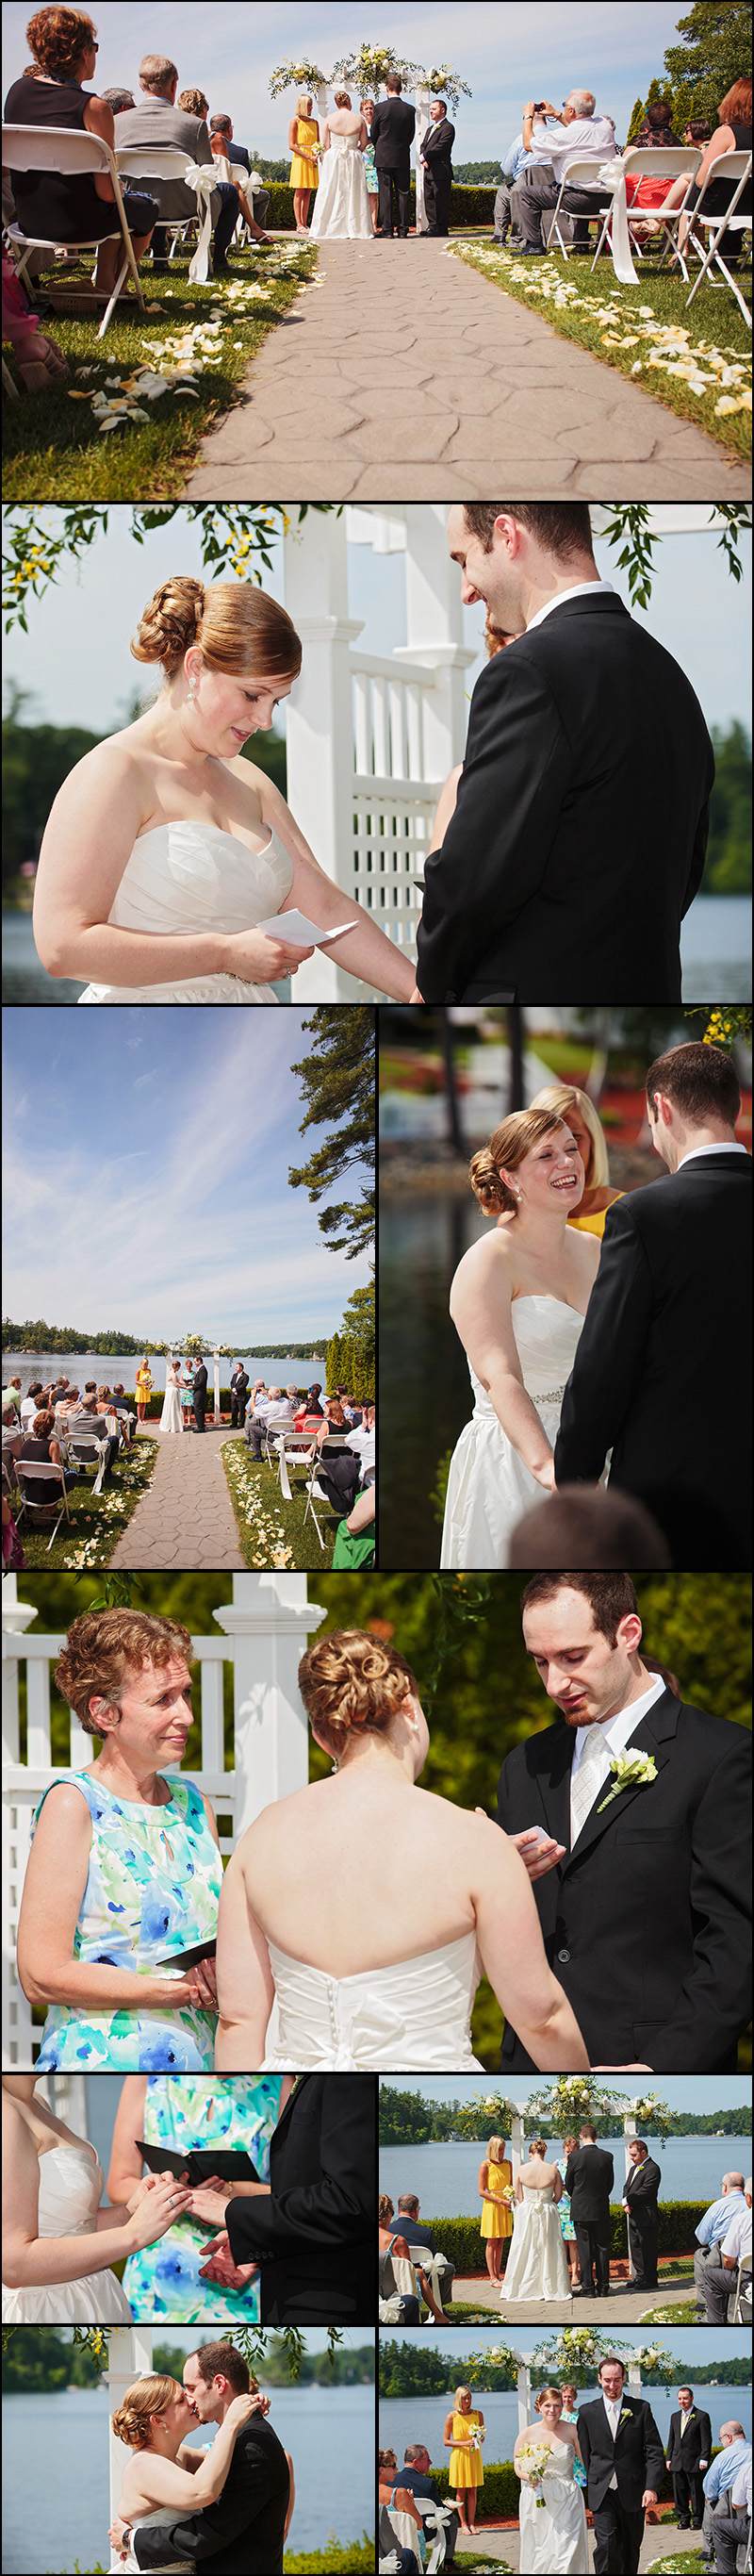 CASTLETON WEDDING PHOTOS NEAR POND NH